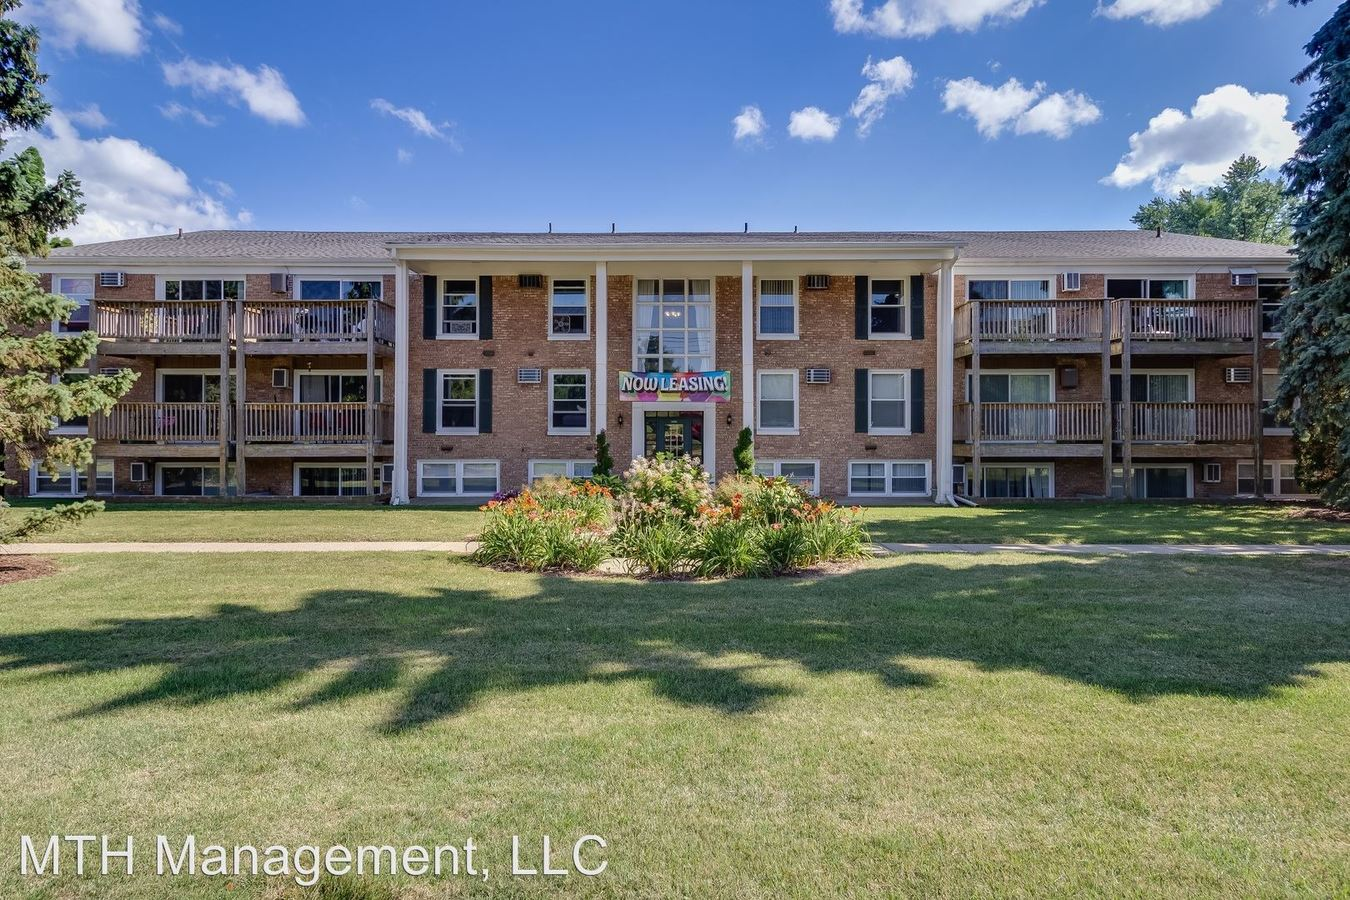 2 Bedrooms 1 Bathroom Apartment for rent at Hull Apartments in East Lansing, MI